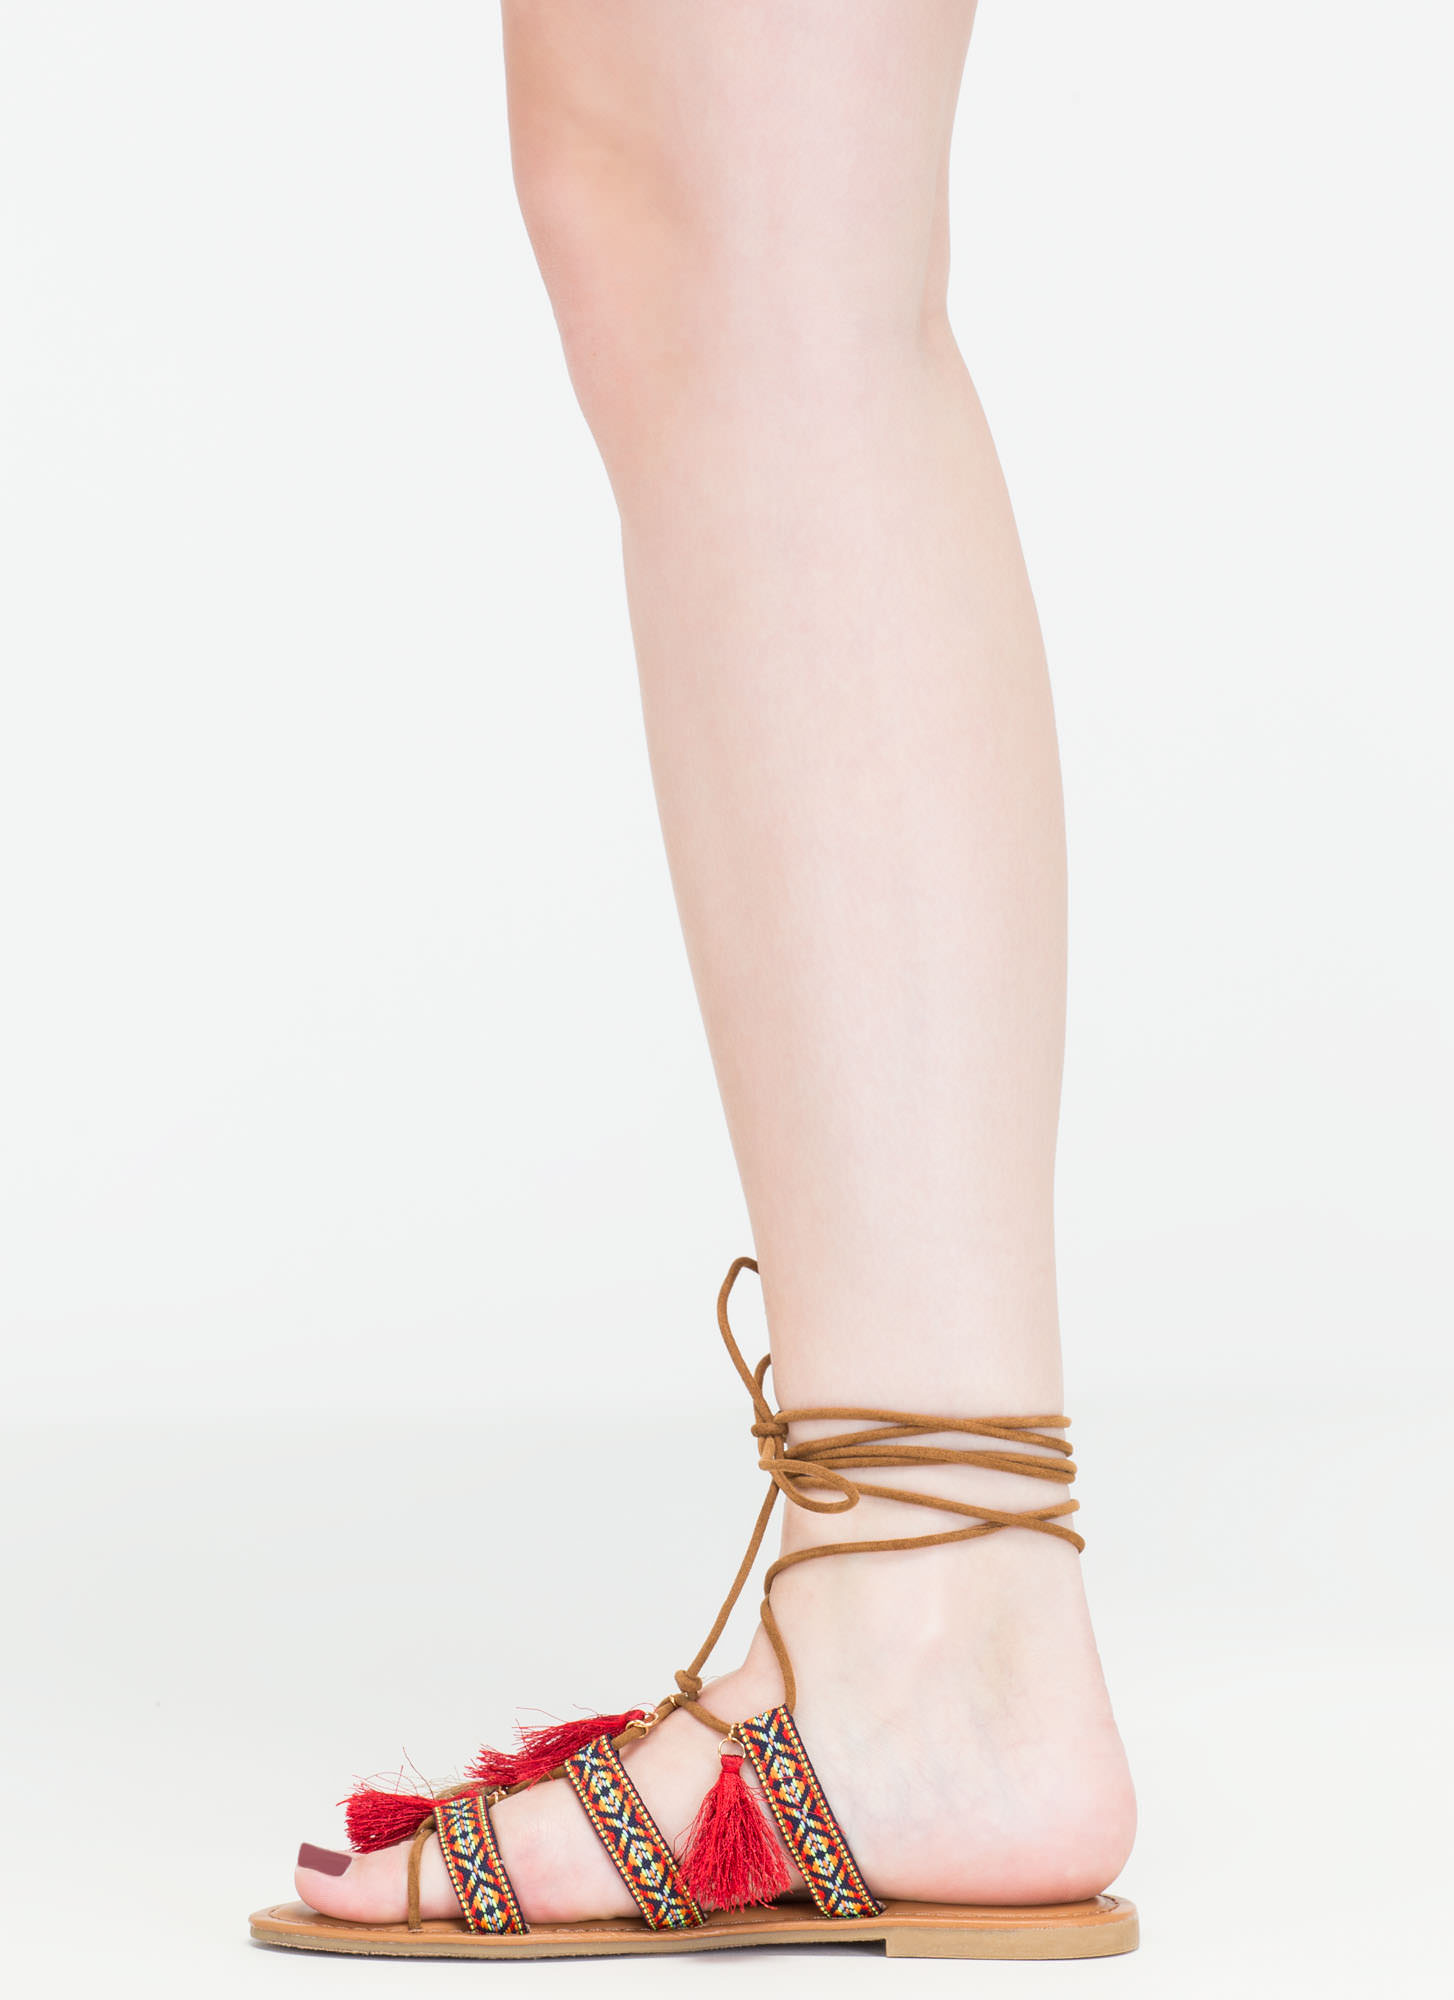 Mythical Land Woven Lace-Up Sandals TAN